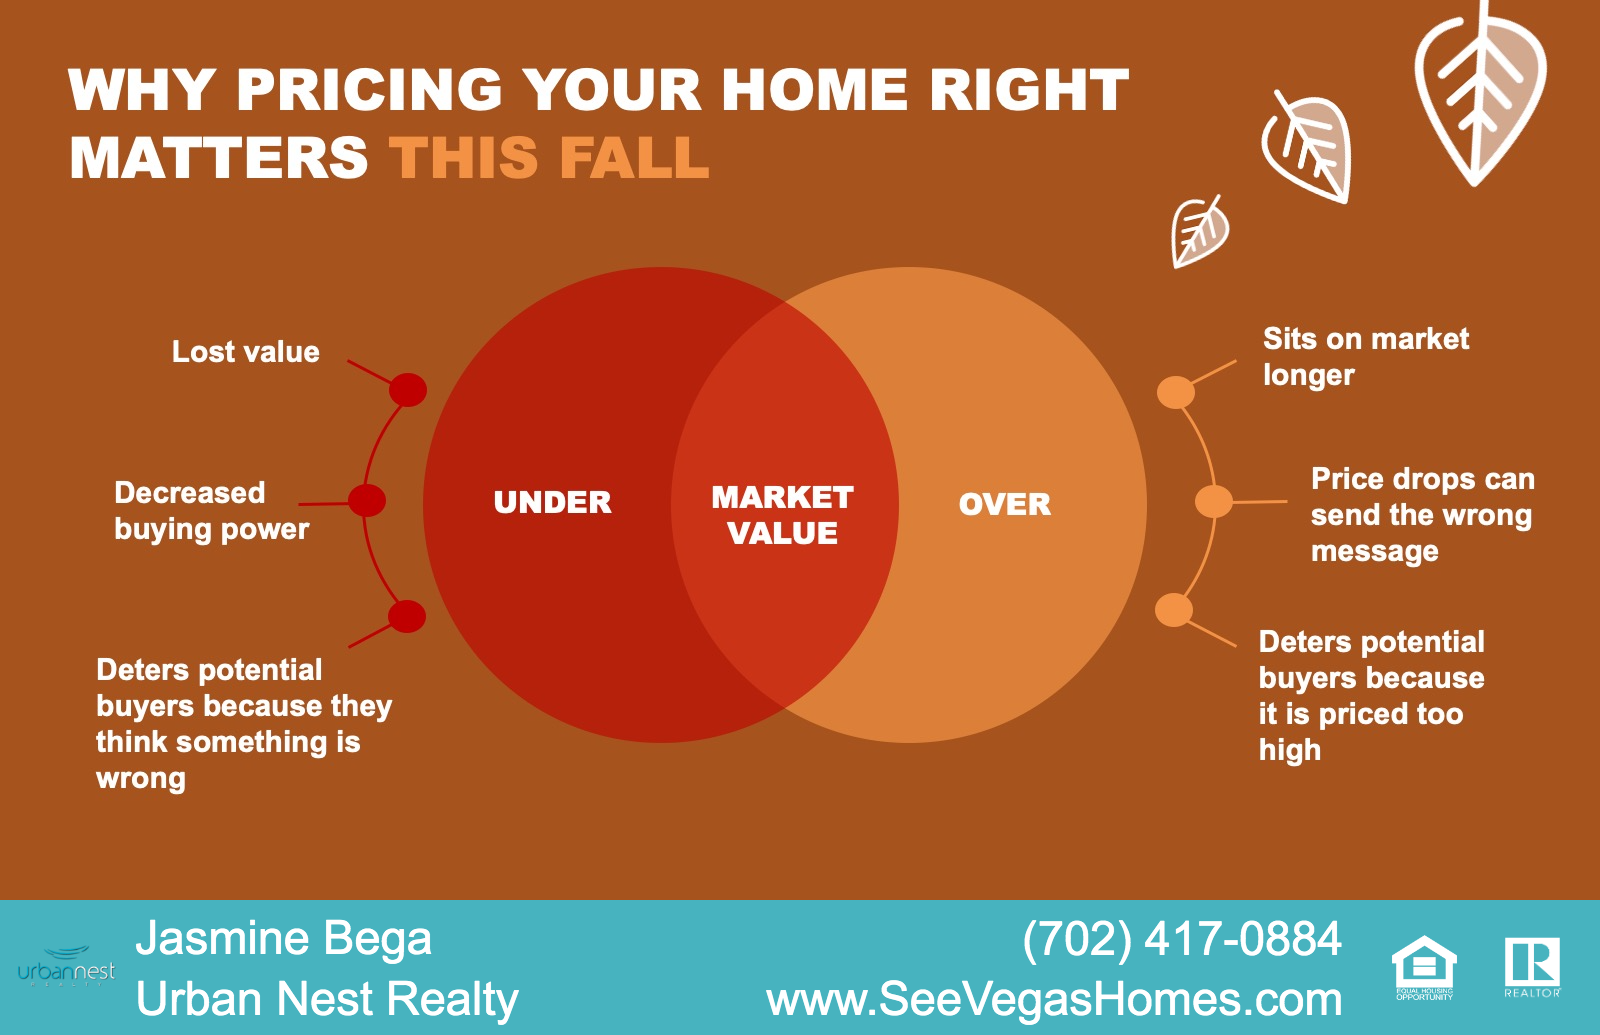 Why Pricing Your Home Right Matters This Fall 2020 SeeVegasHomes